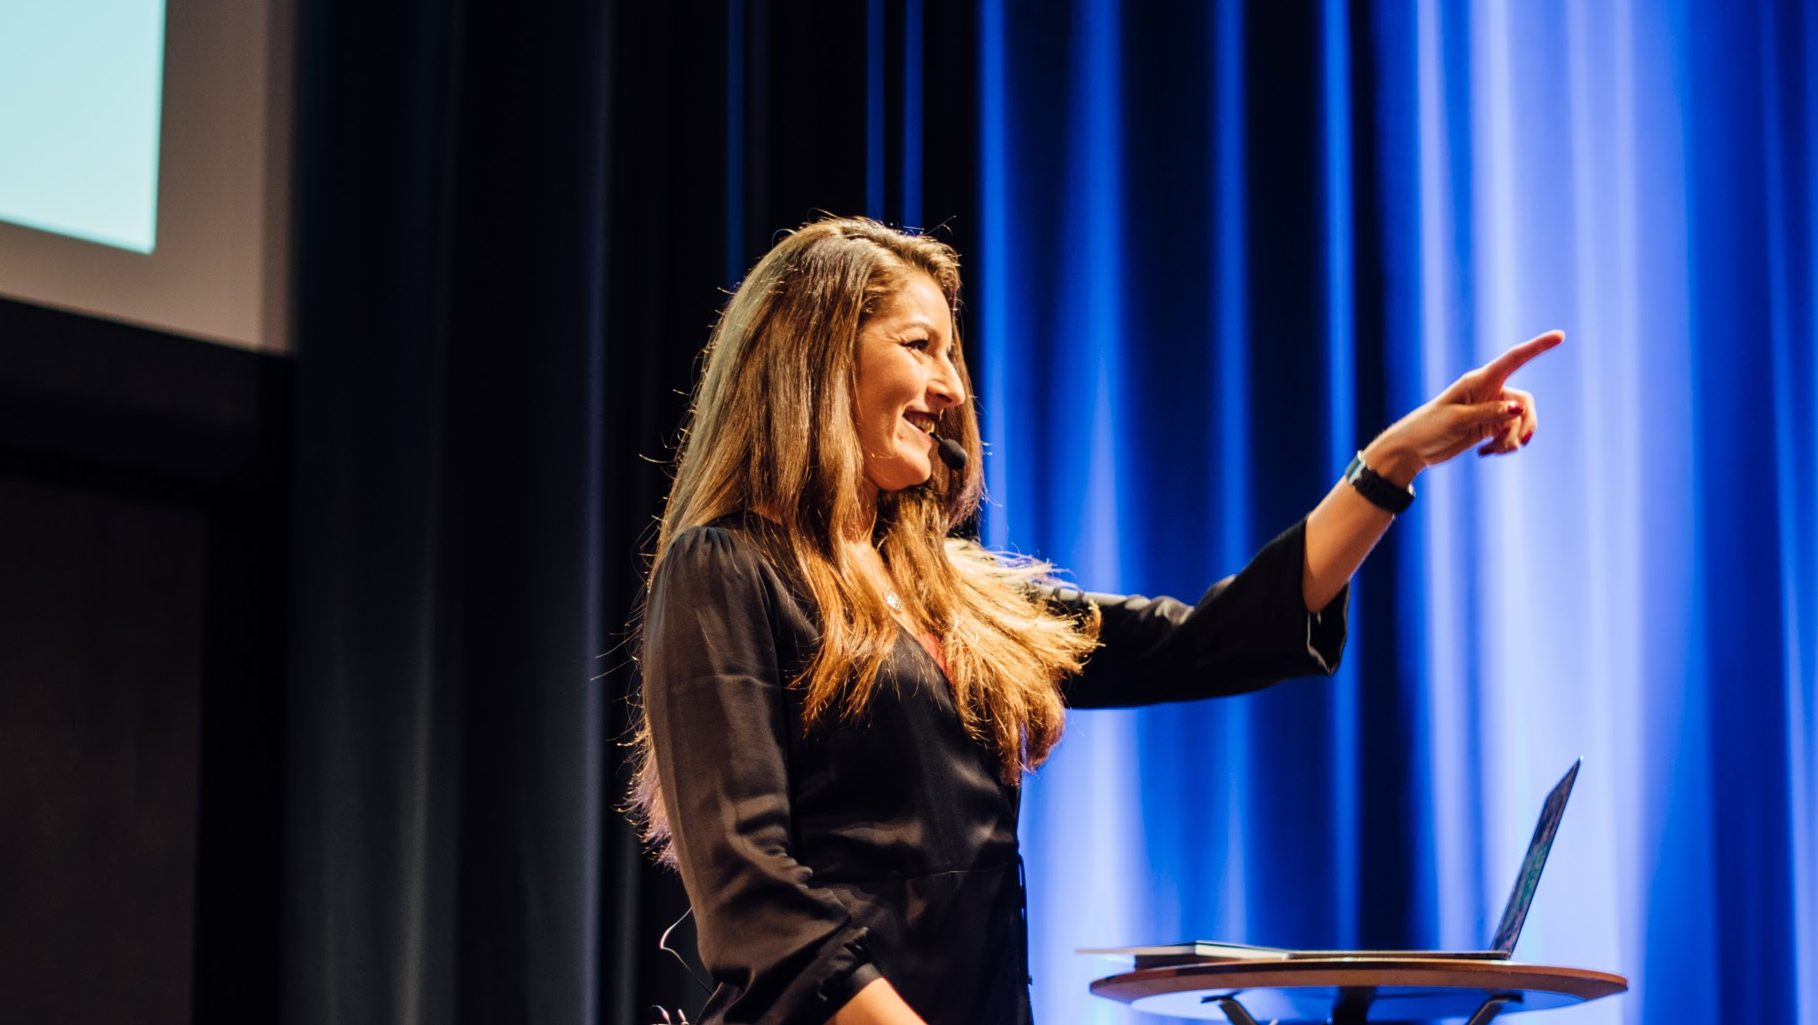 Female speaker on stage pointing and smiling